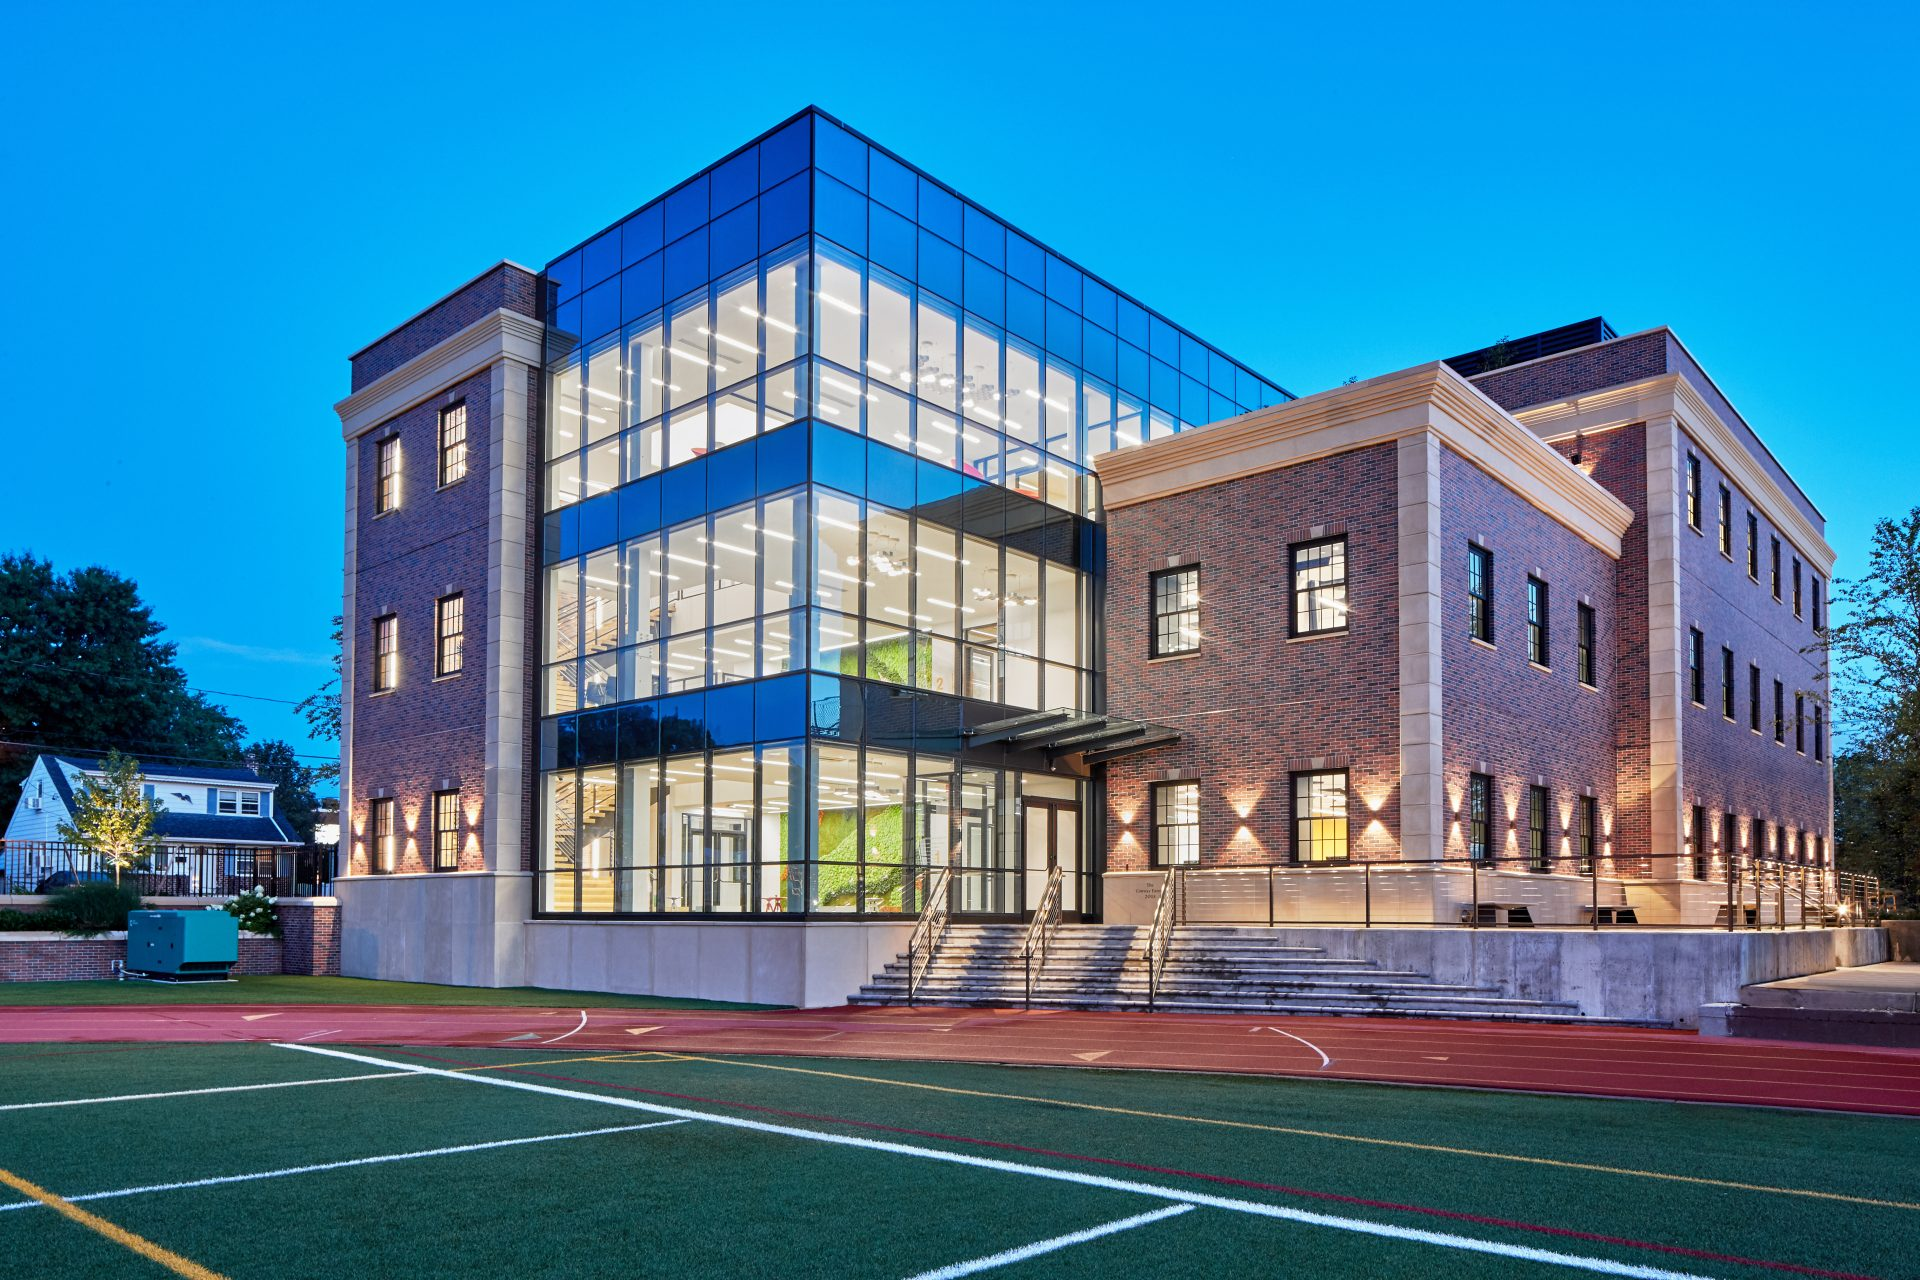 Rear view of the new Dolan Family Science Center from the campus football field